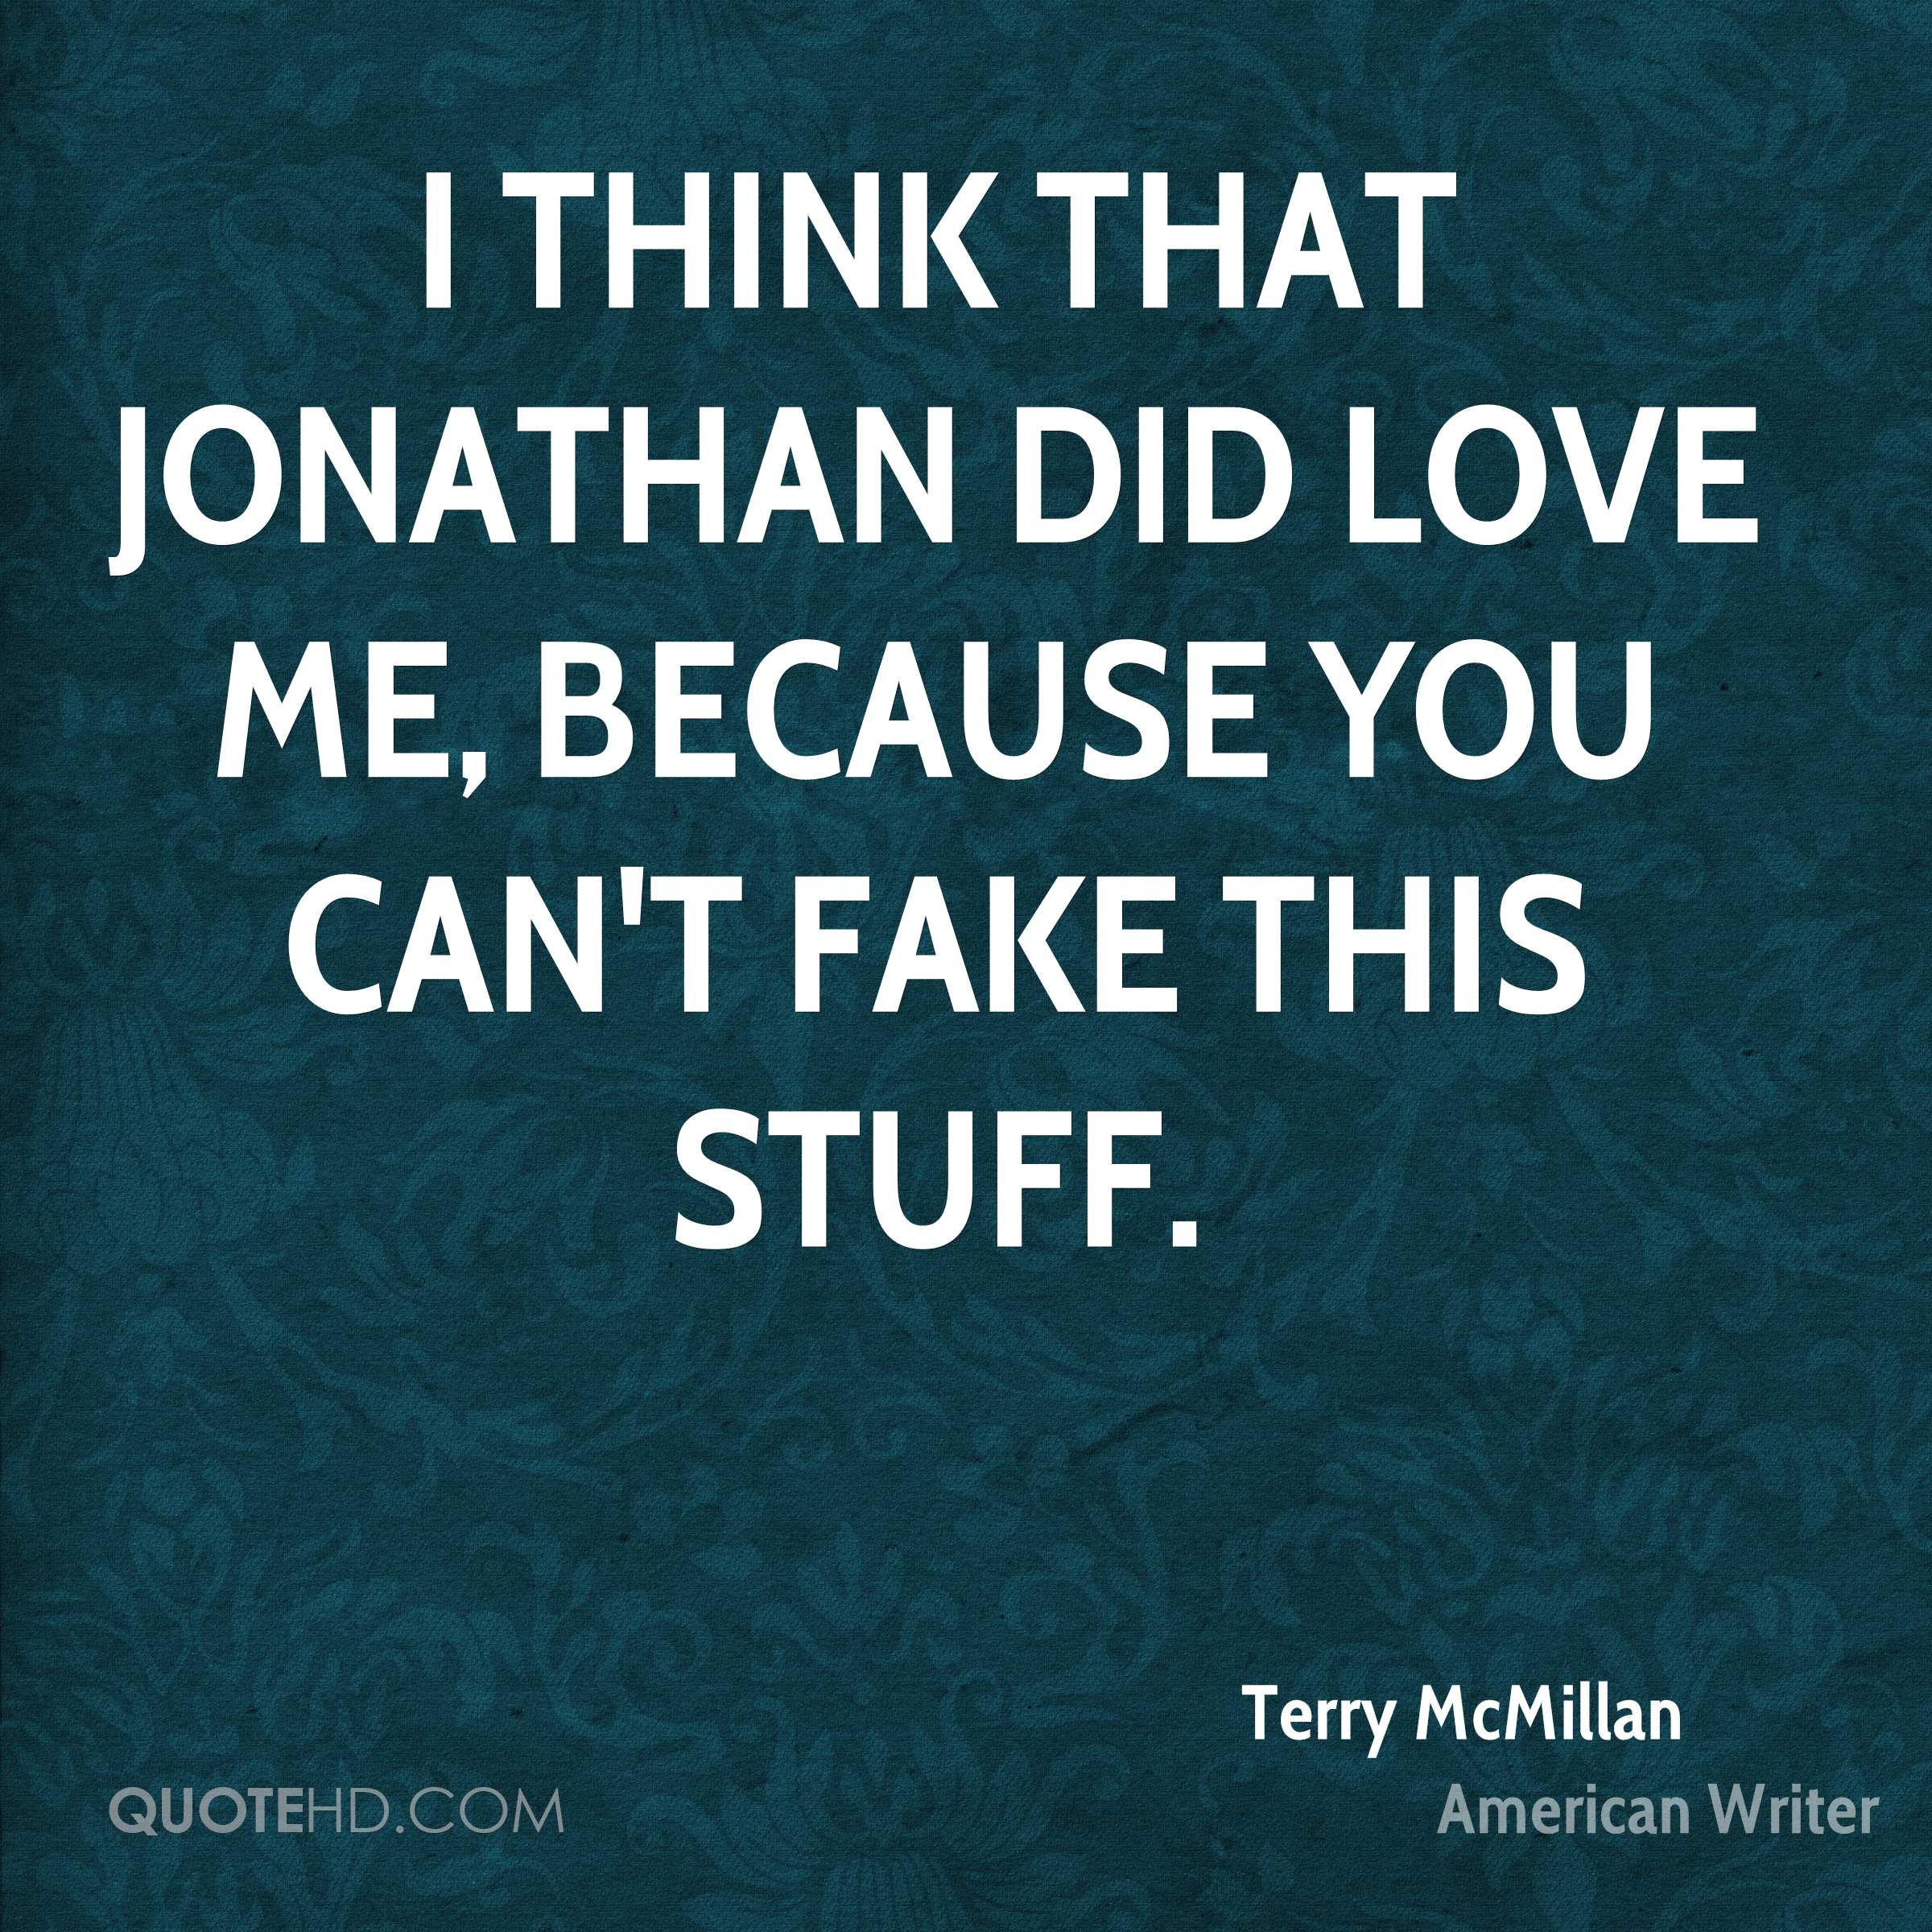 I think that Jonathan did love me, because you can't fake this stuff.